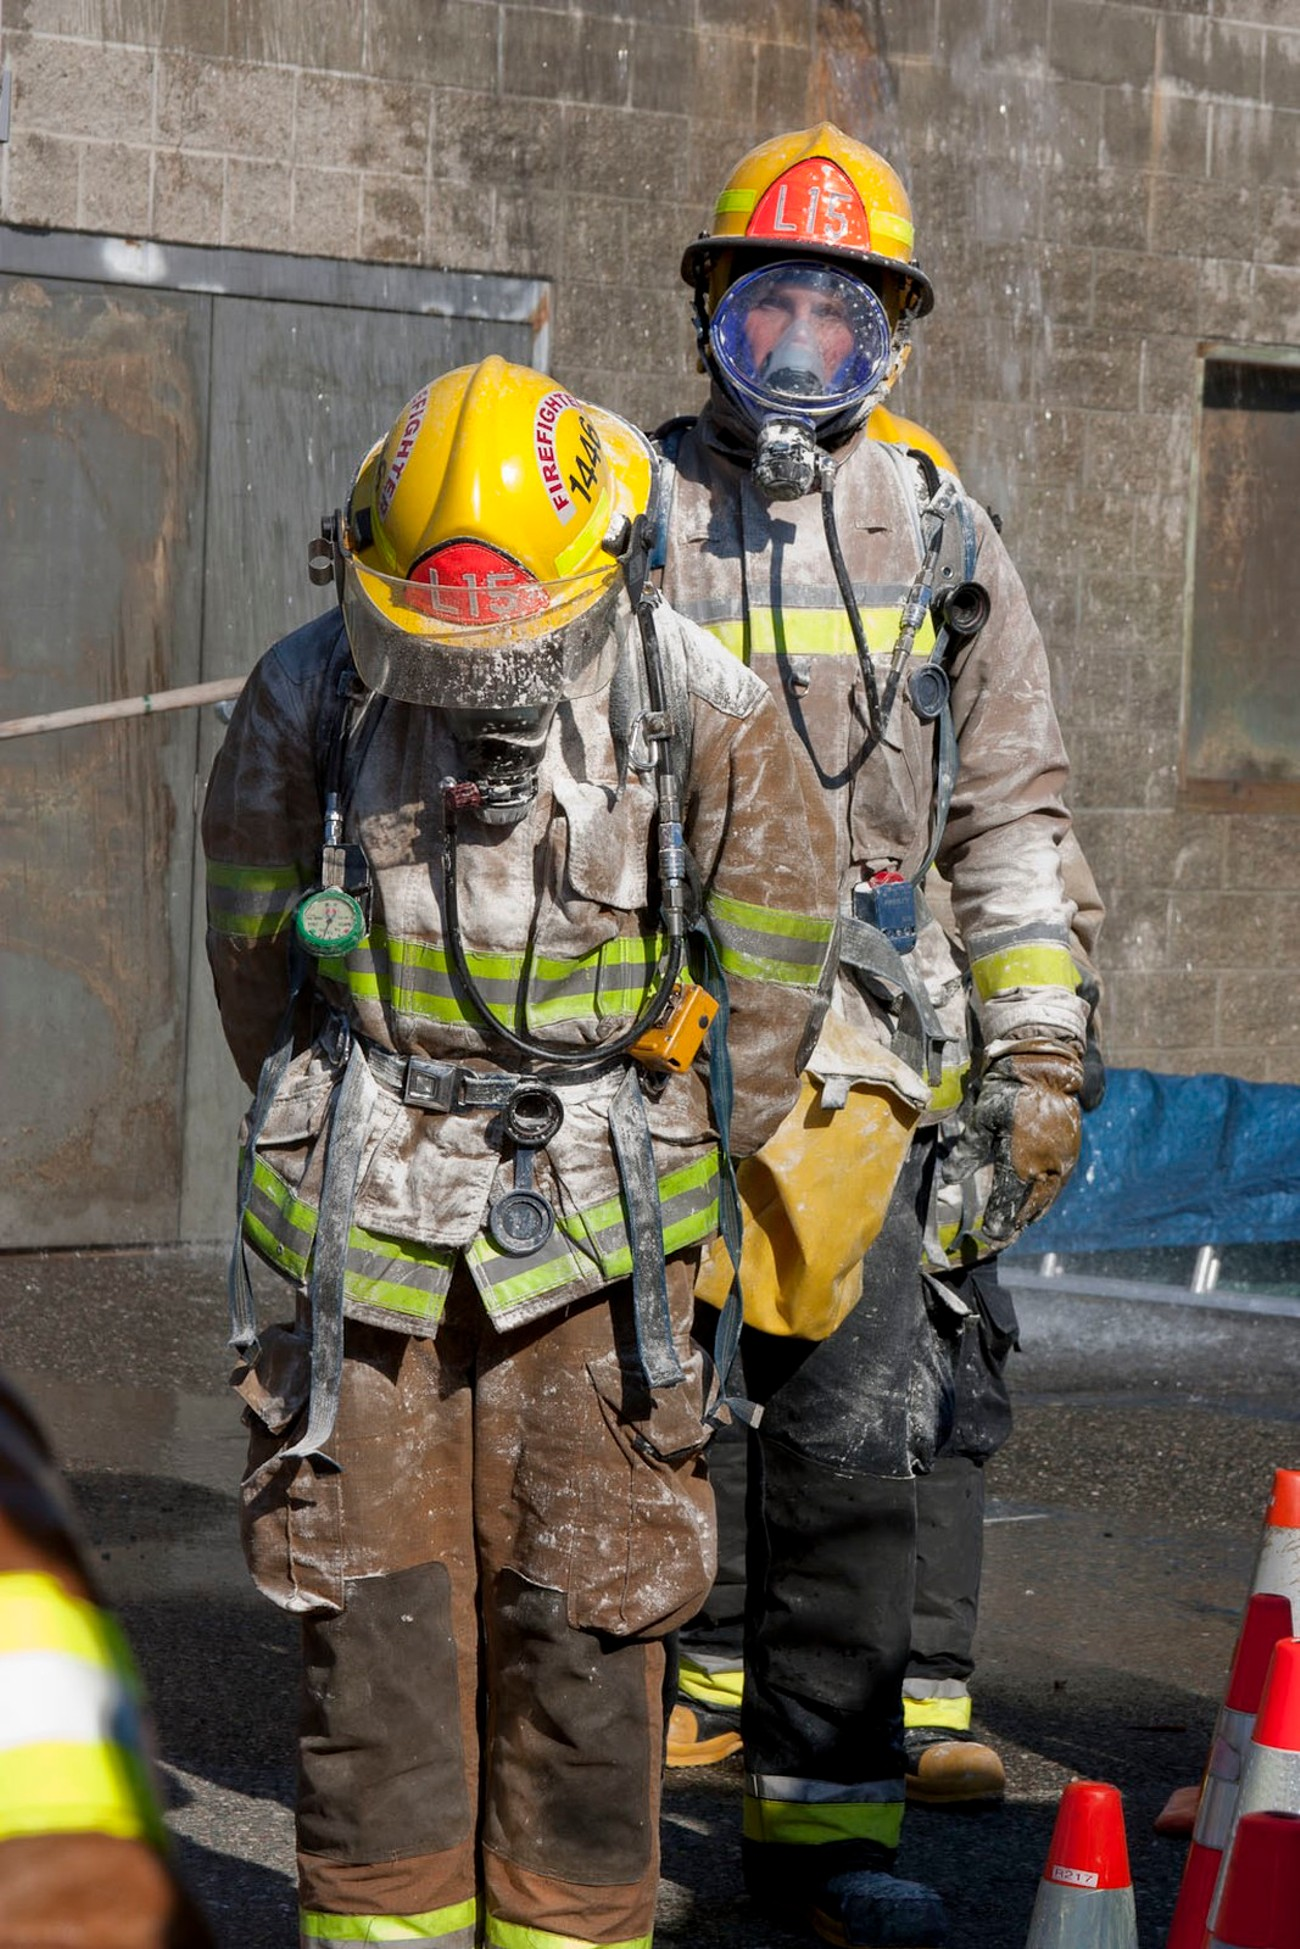 Decontamination training at Skagit County, WA fire academy